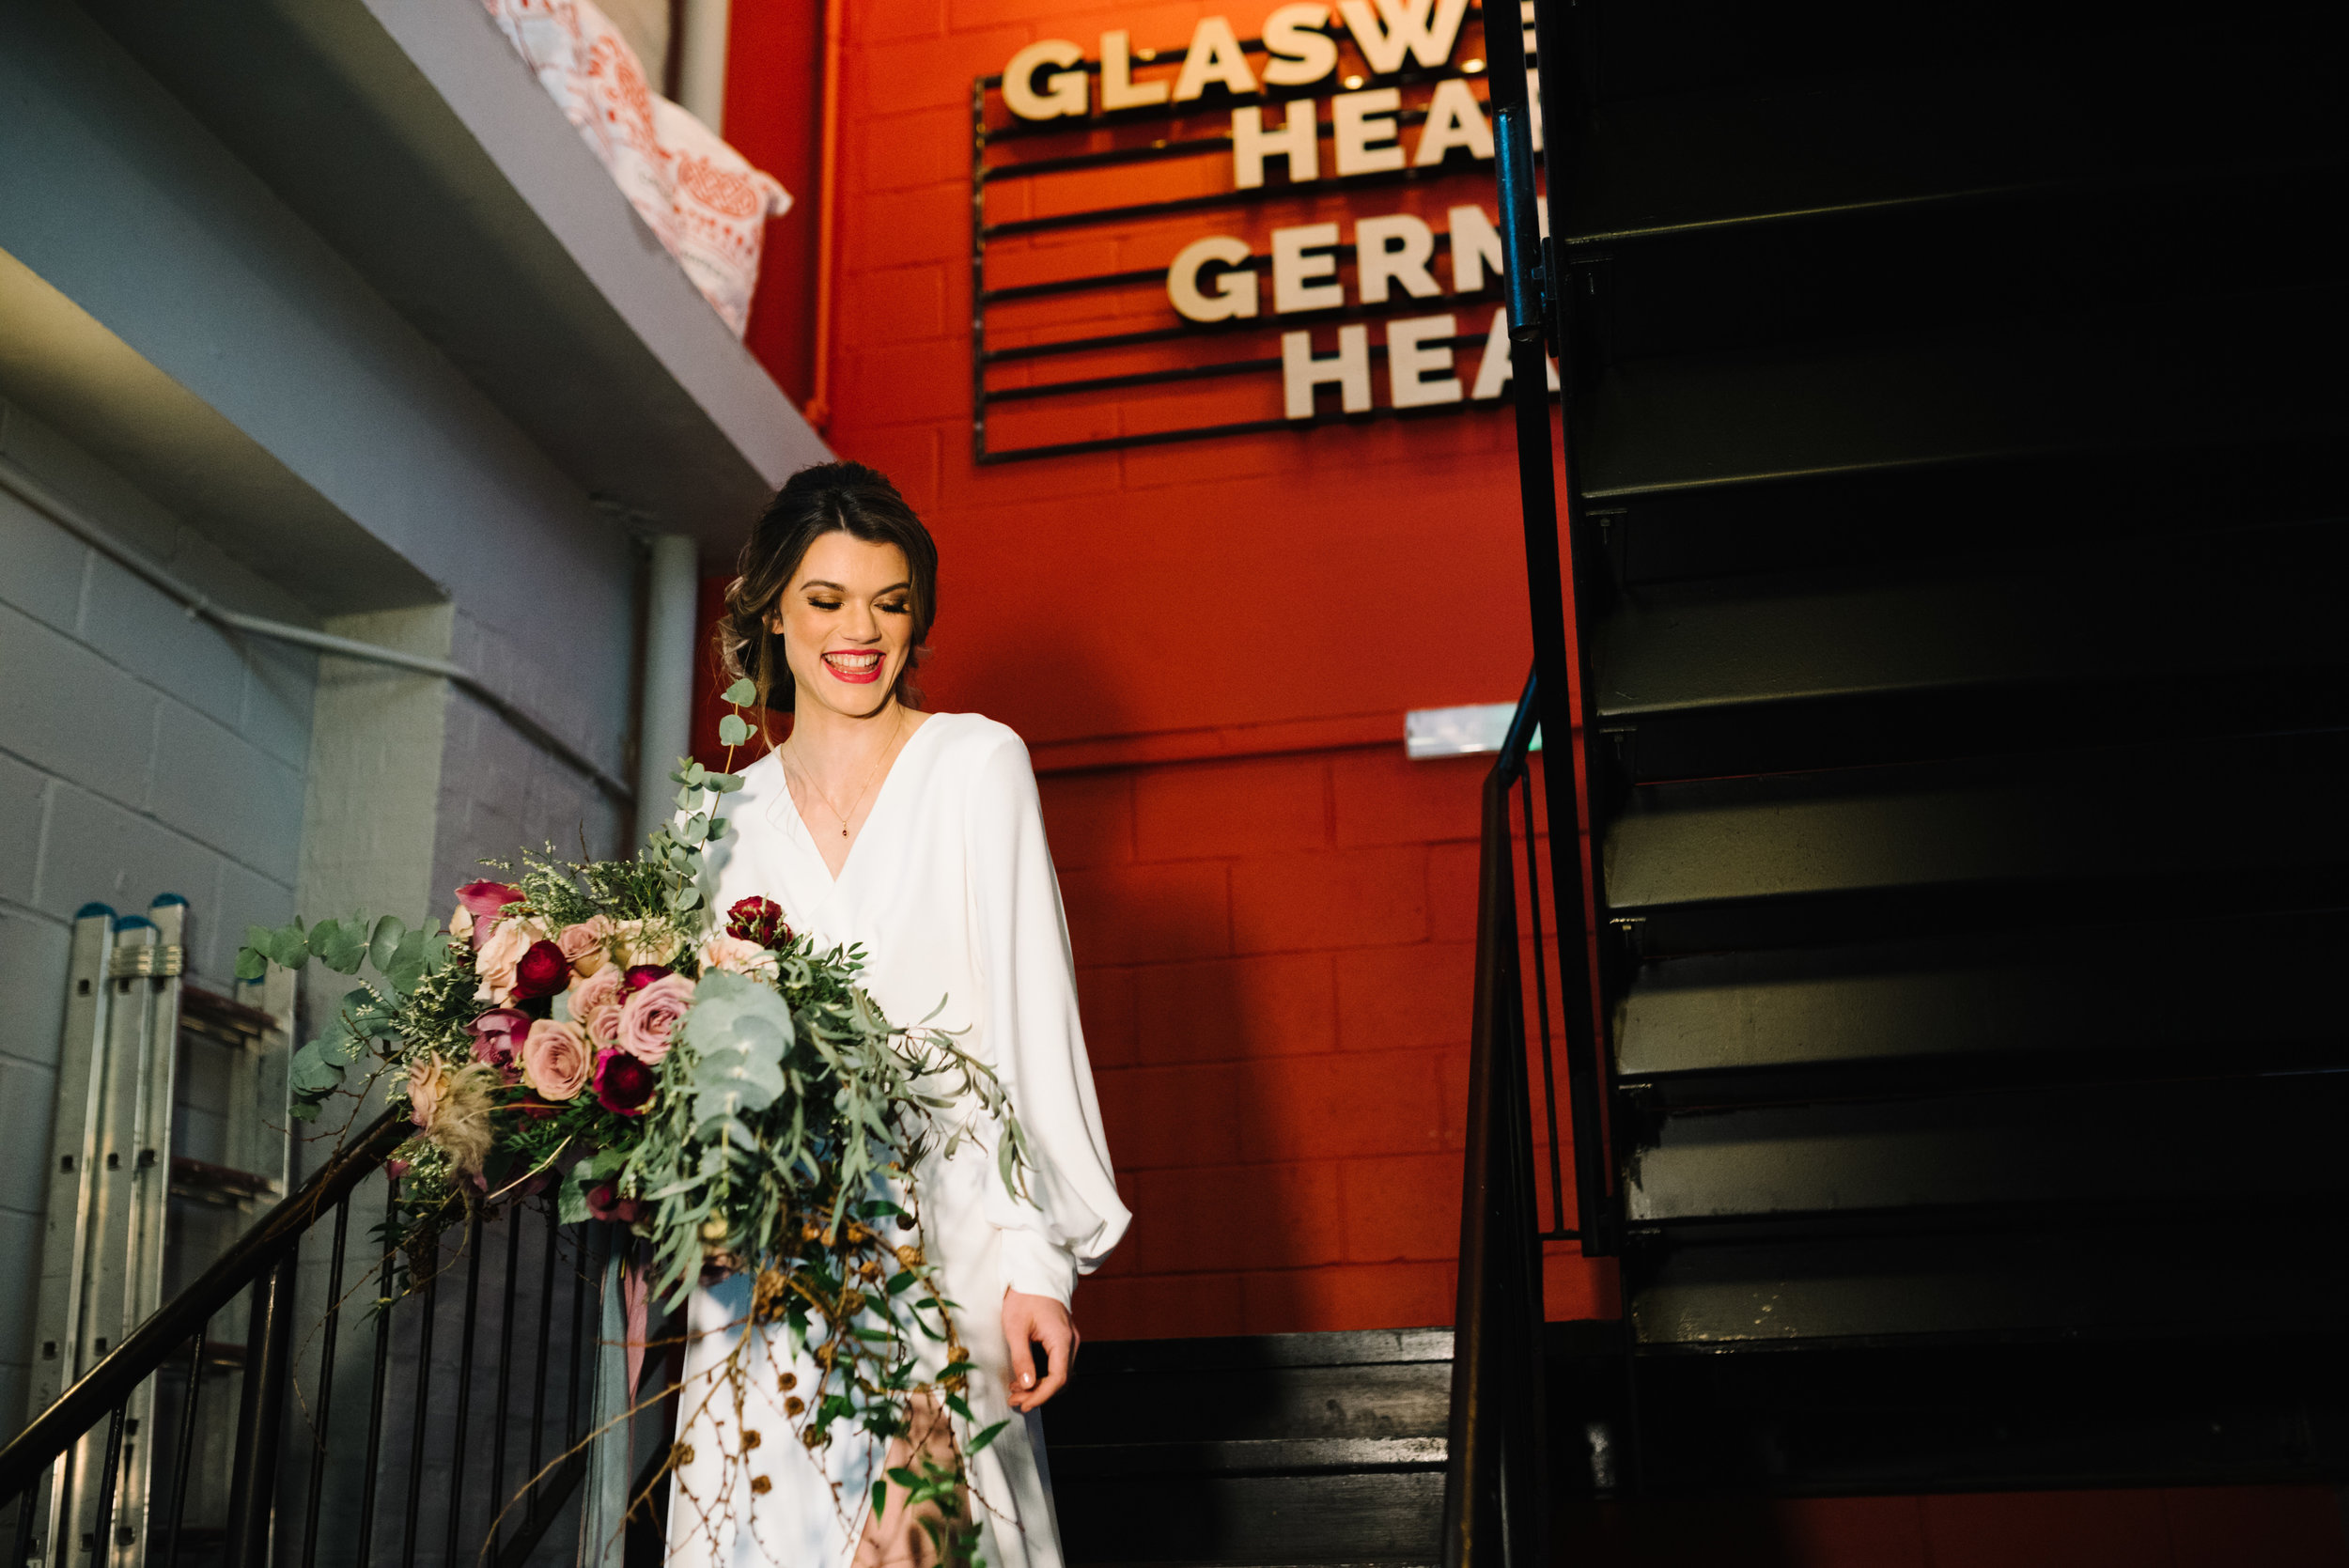 Modern Wedding Inspiration Shoot in Glasgow Brewery With a Frill Installation, Candy Floss and Neon 00182.jpg